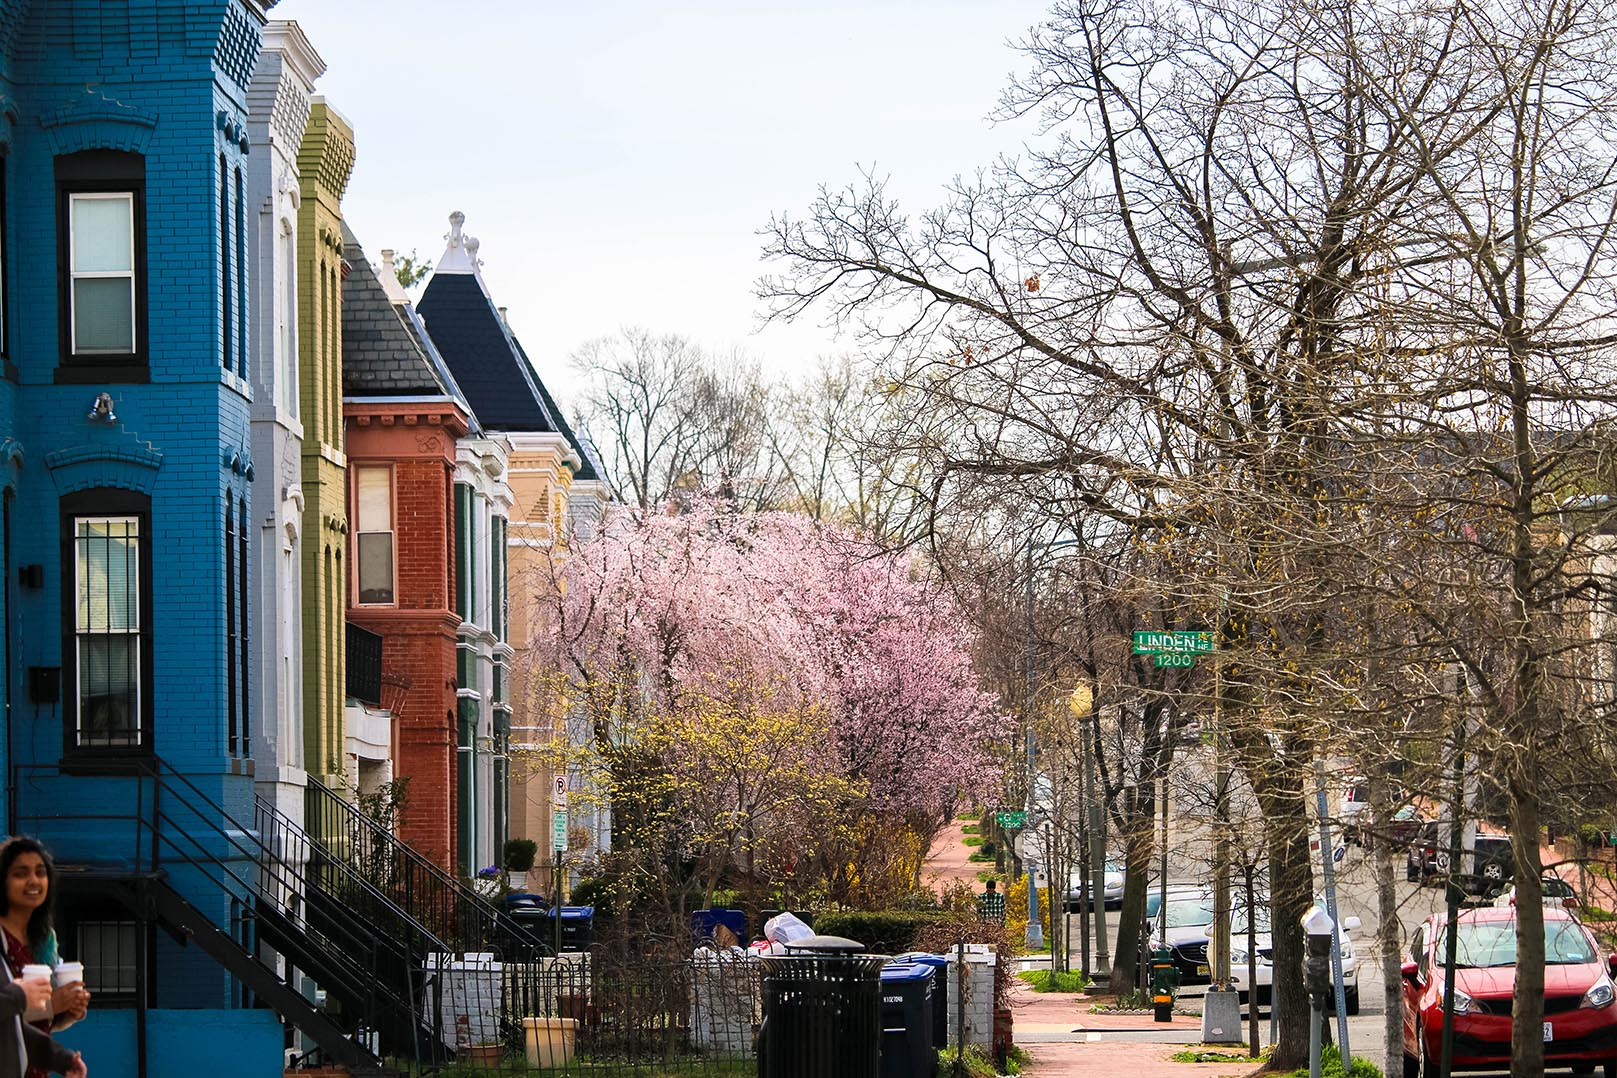 Residential street in Atlas District, Washington, D.C.